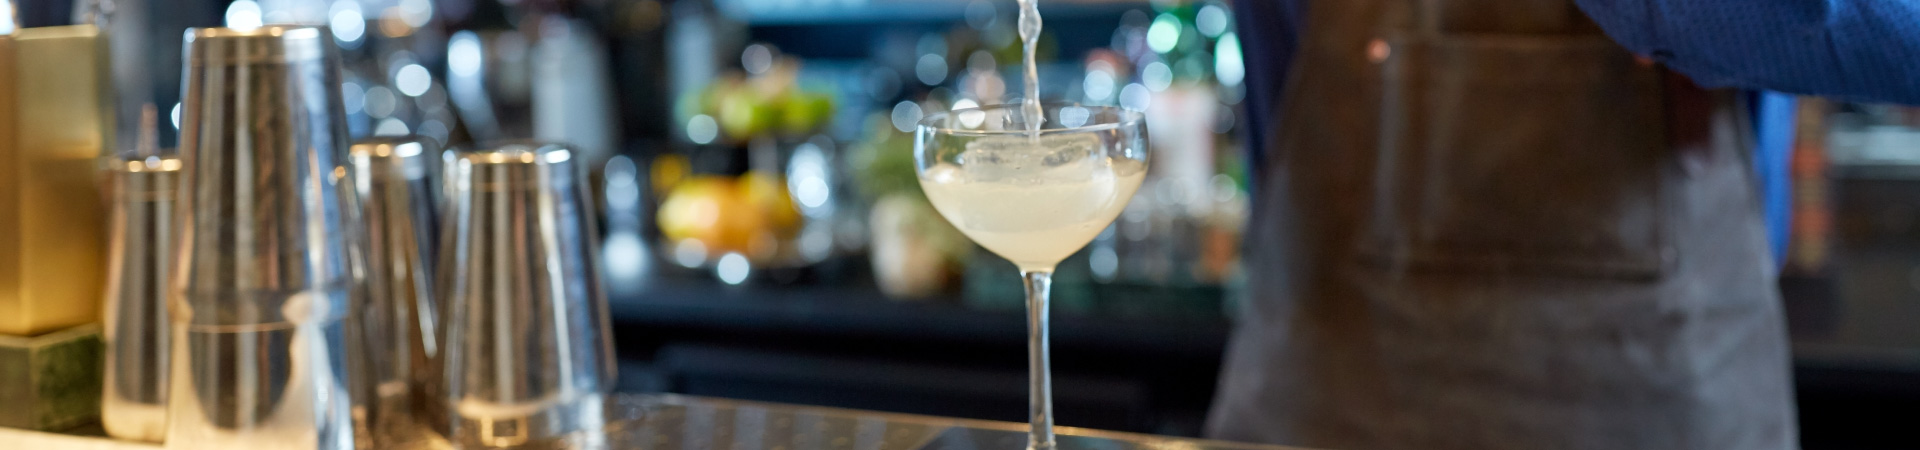 Terrace Grille Happy Hour